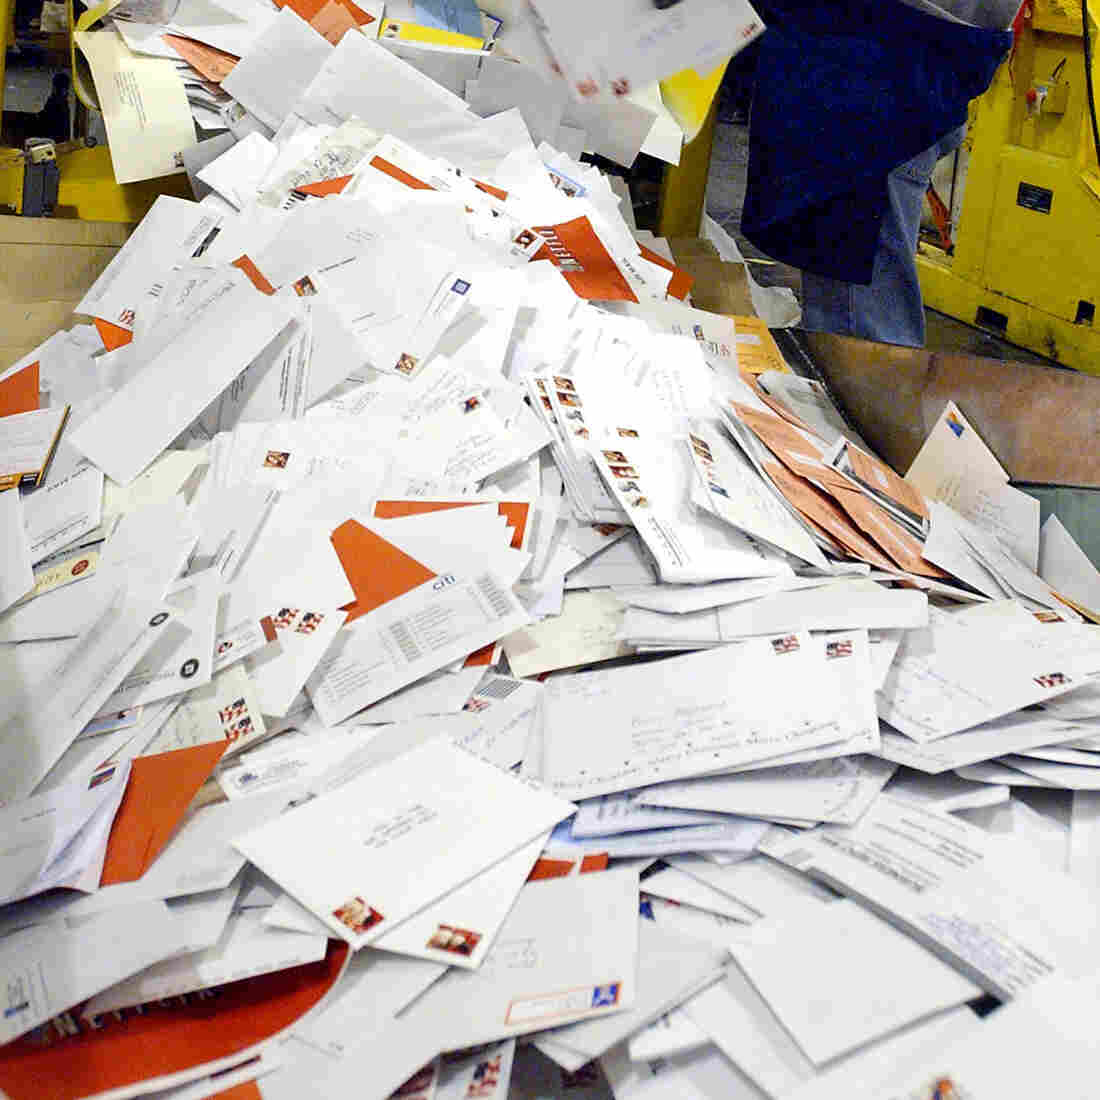 Postmaster: We Photograph Your Mail, But Not To Snoop